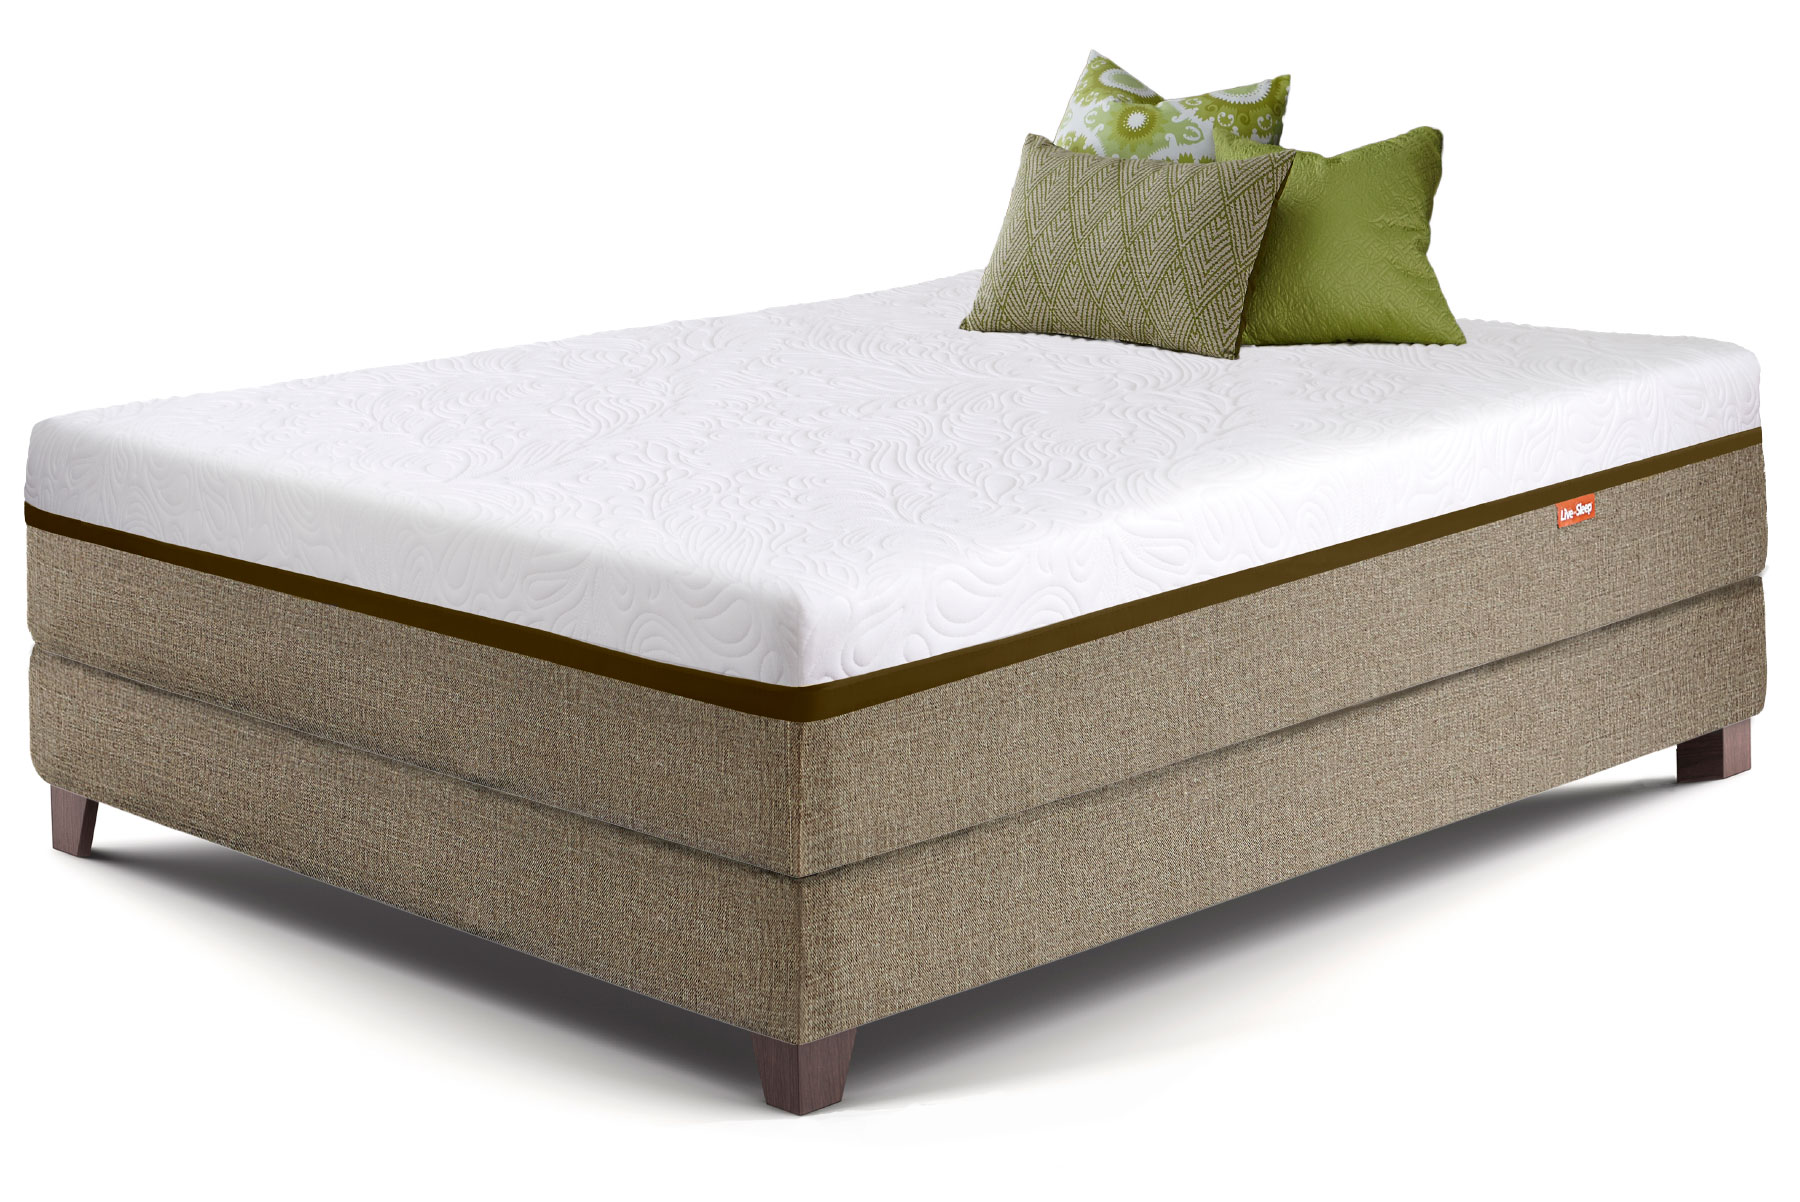 Firm gel memory foam mattress